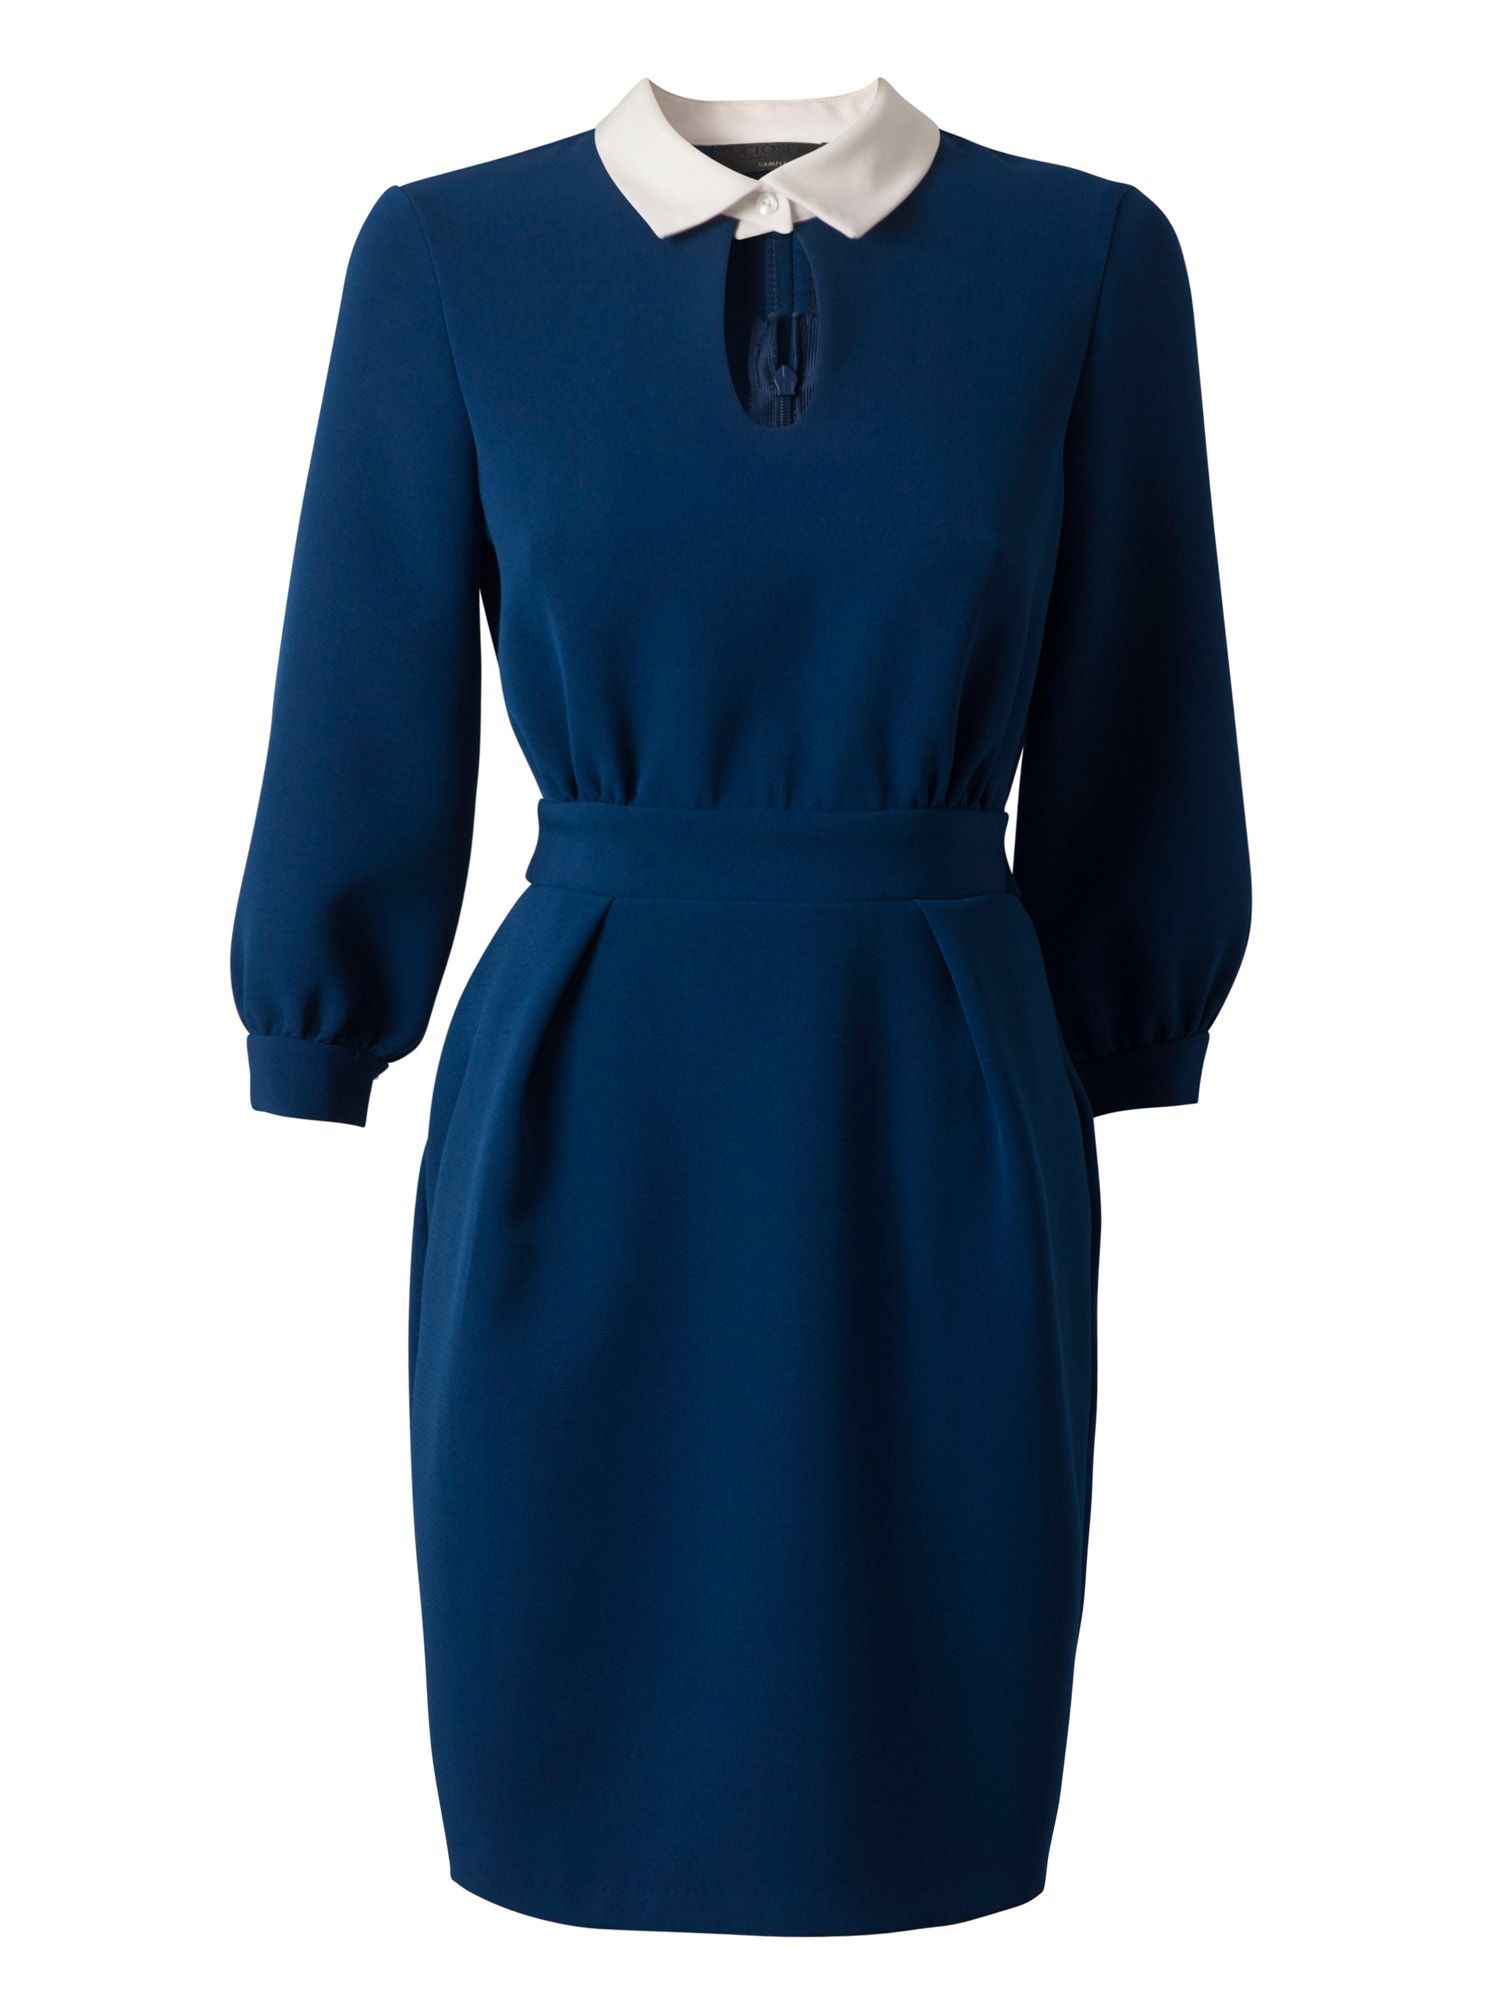 Long sleeve collar tie back dress